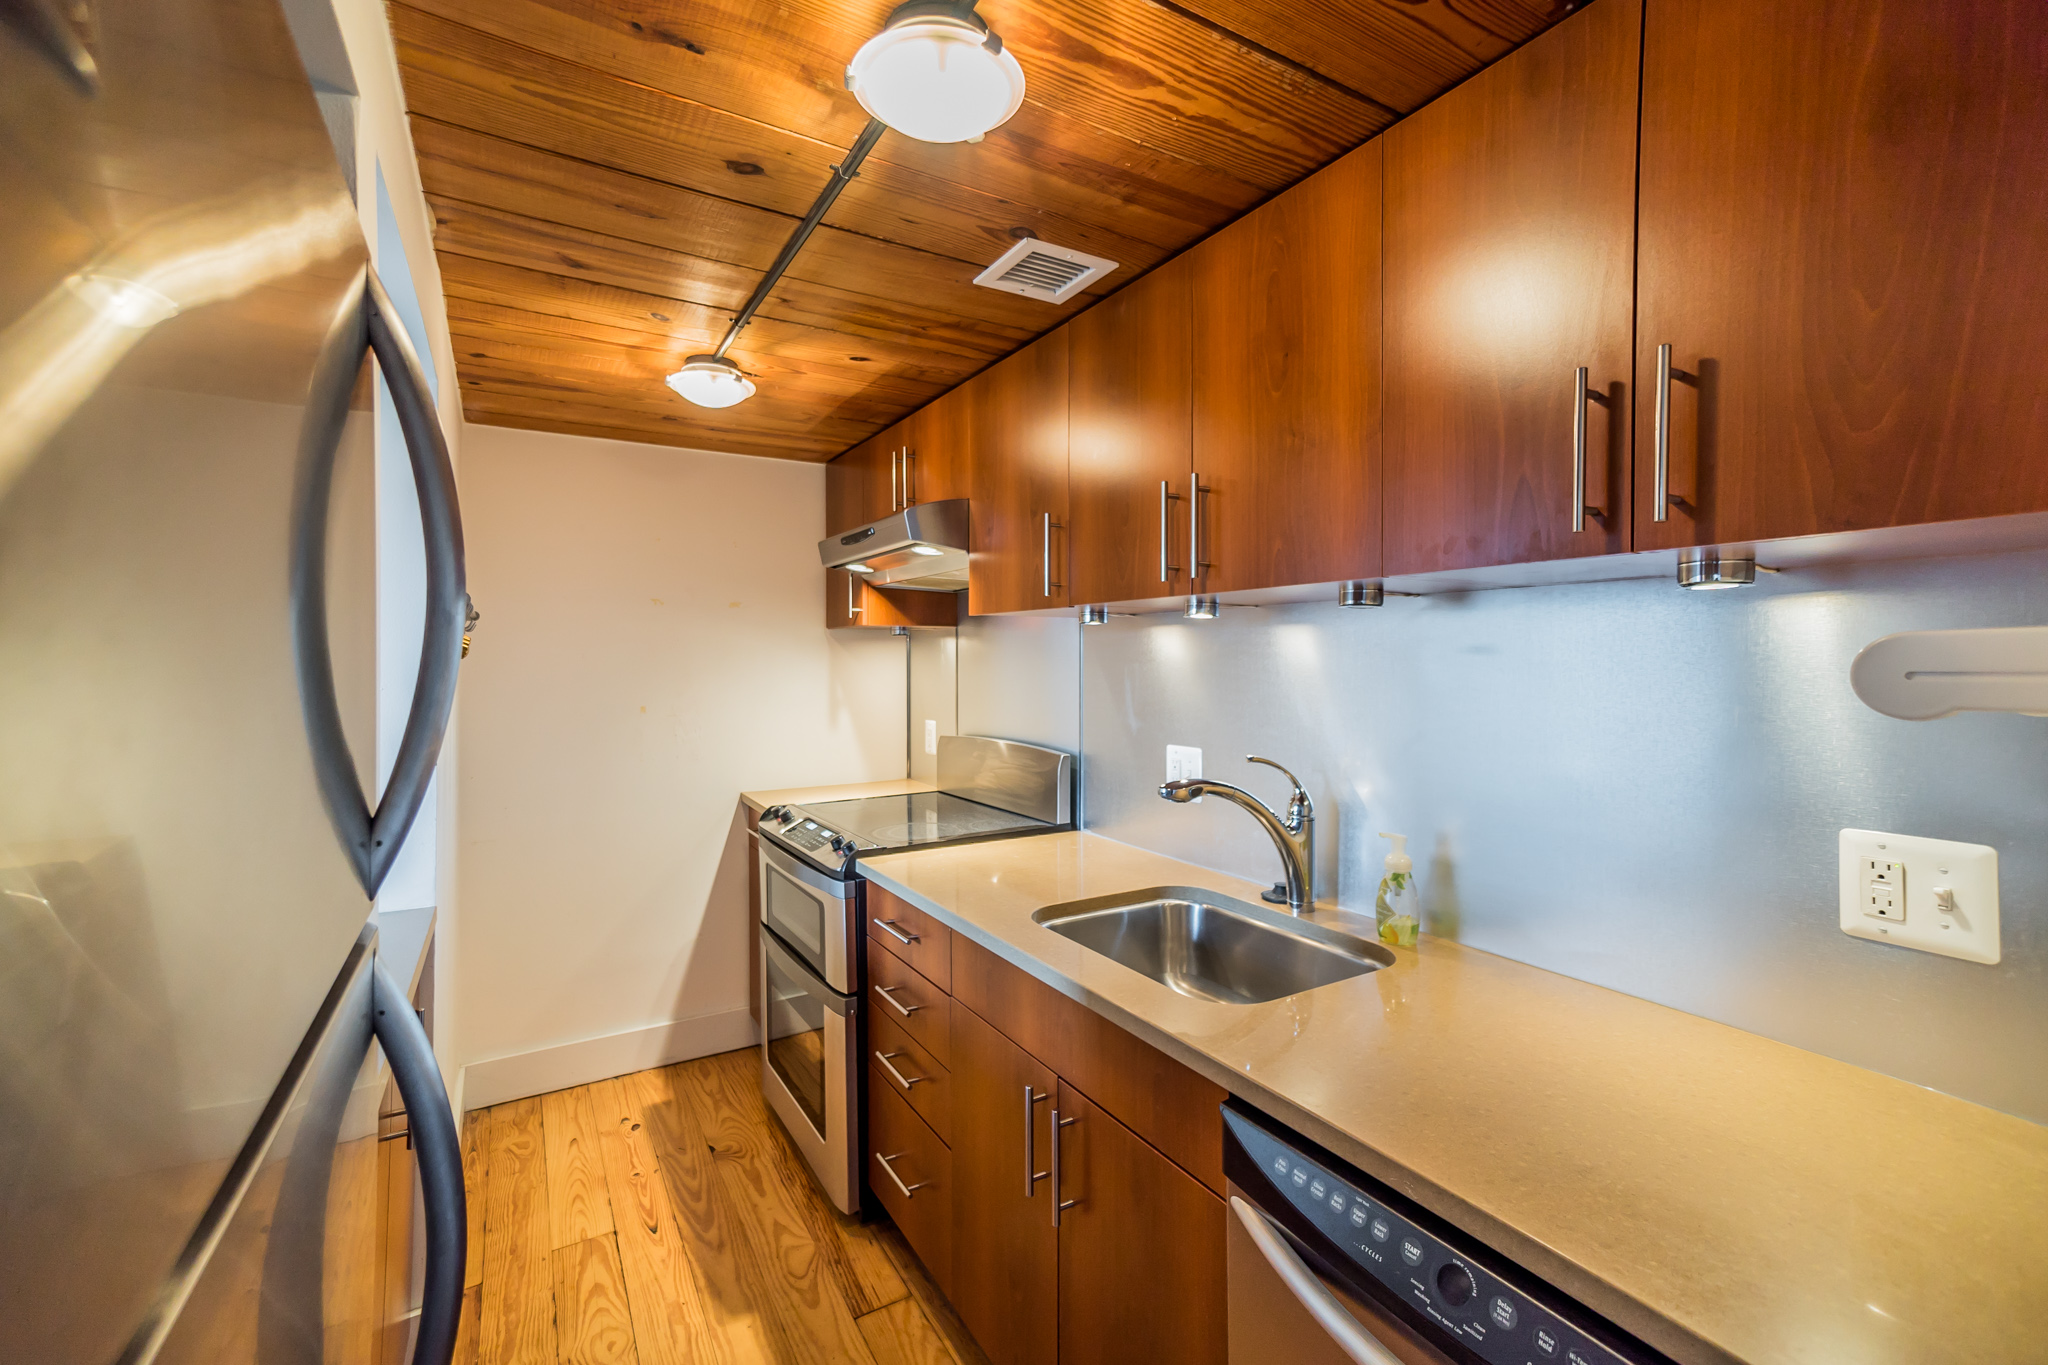 sun drenched old city loft in hoopskirt factory asks 279k